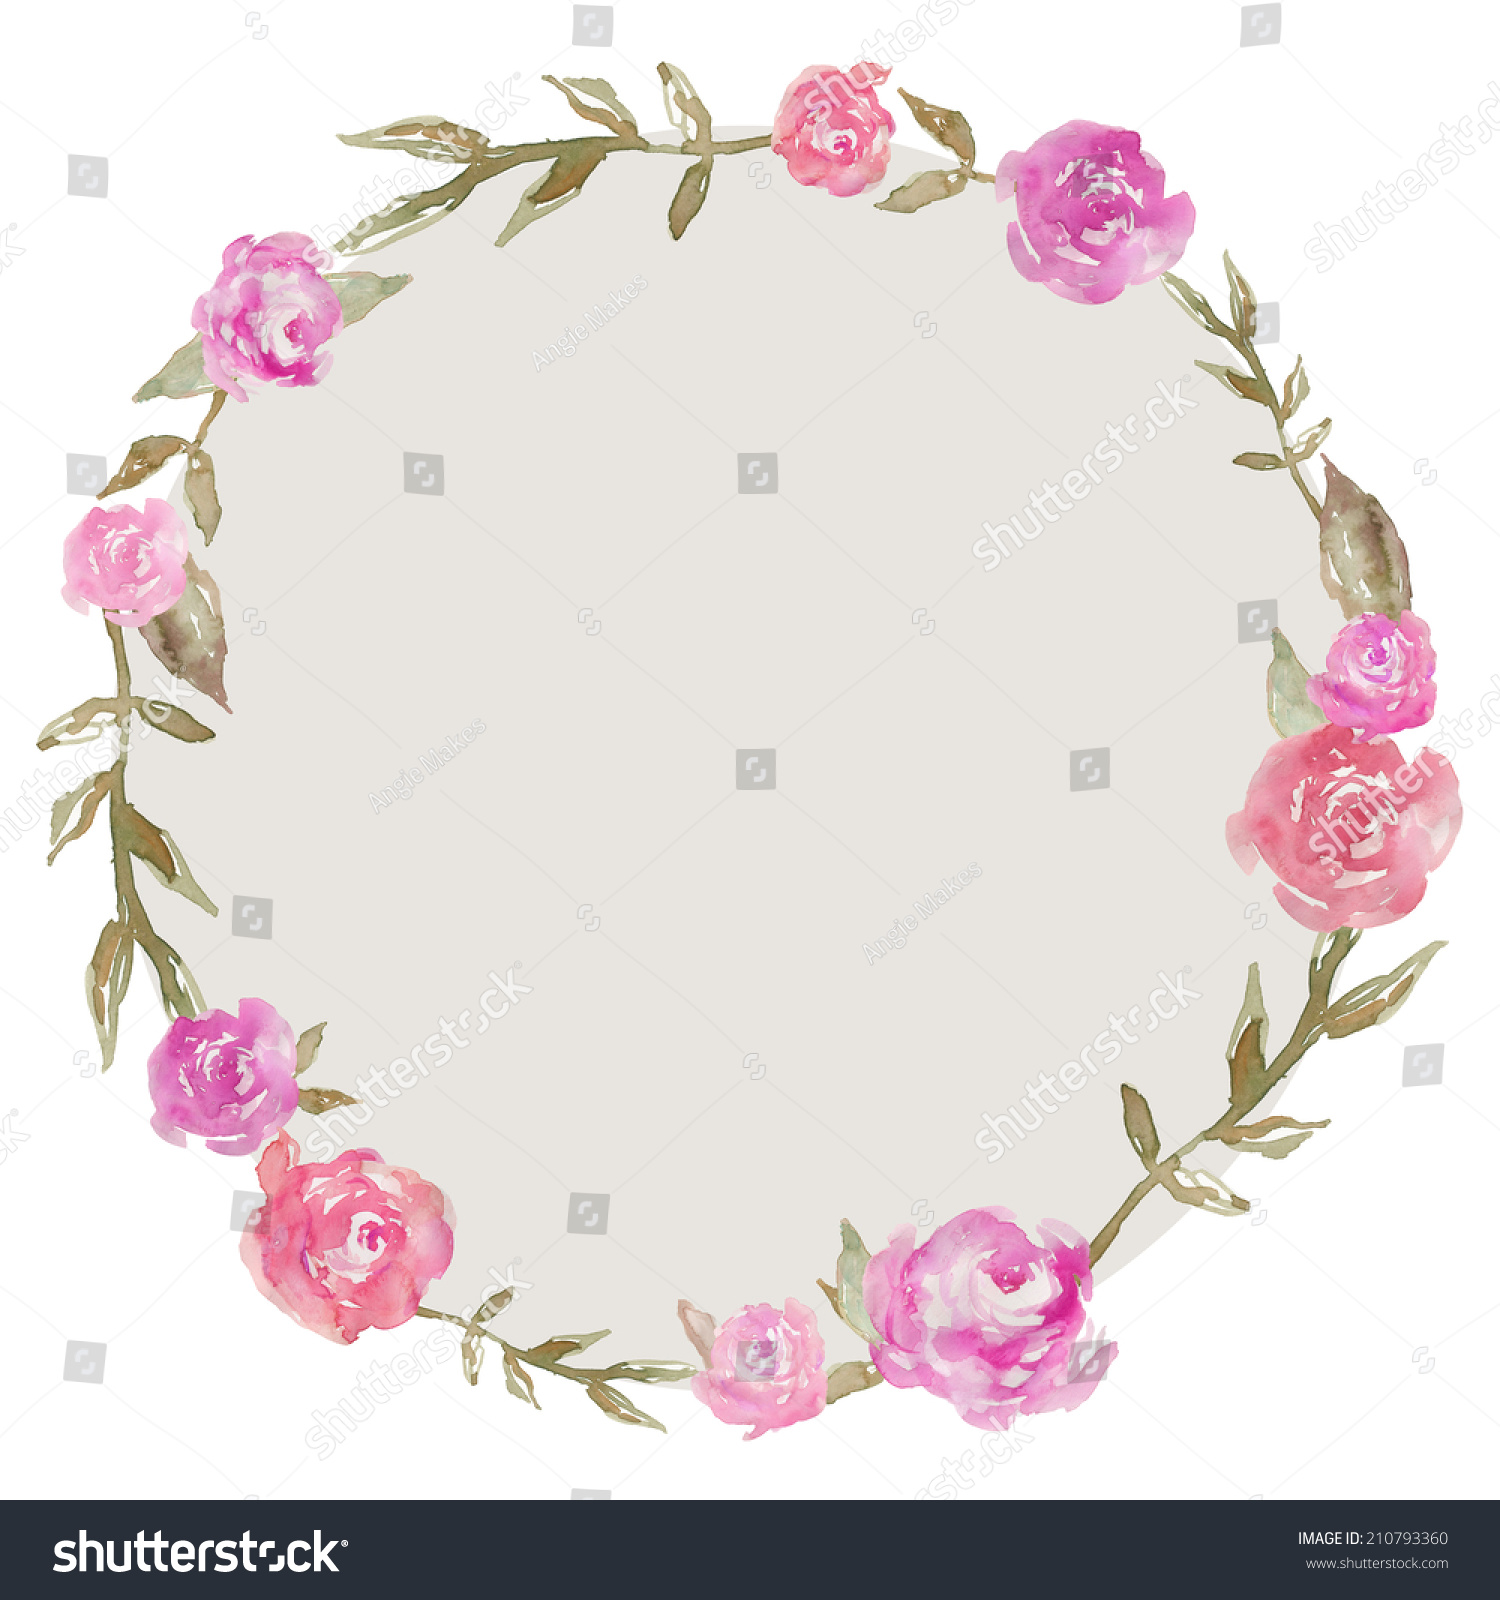 Watercolor Peony Wreath Spring Flower Floral Round Frame